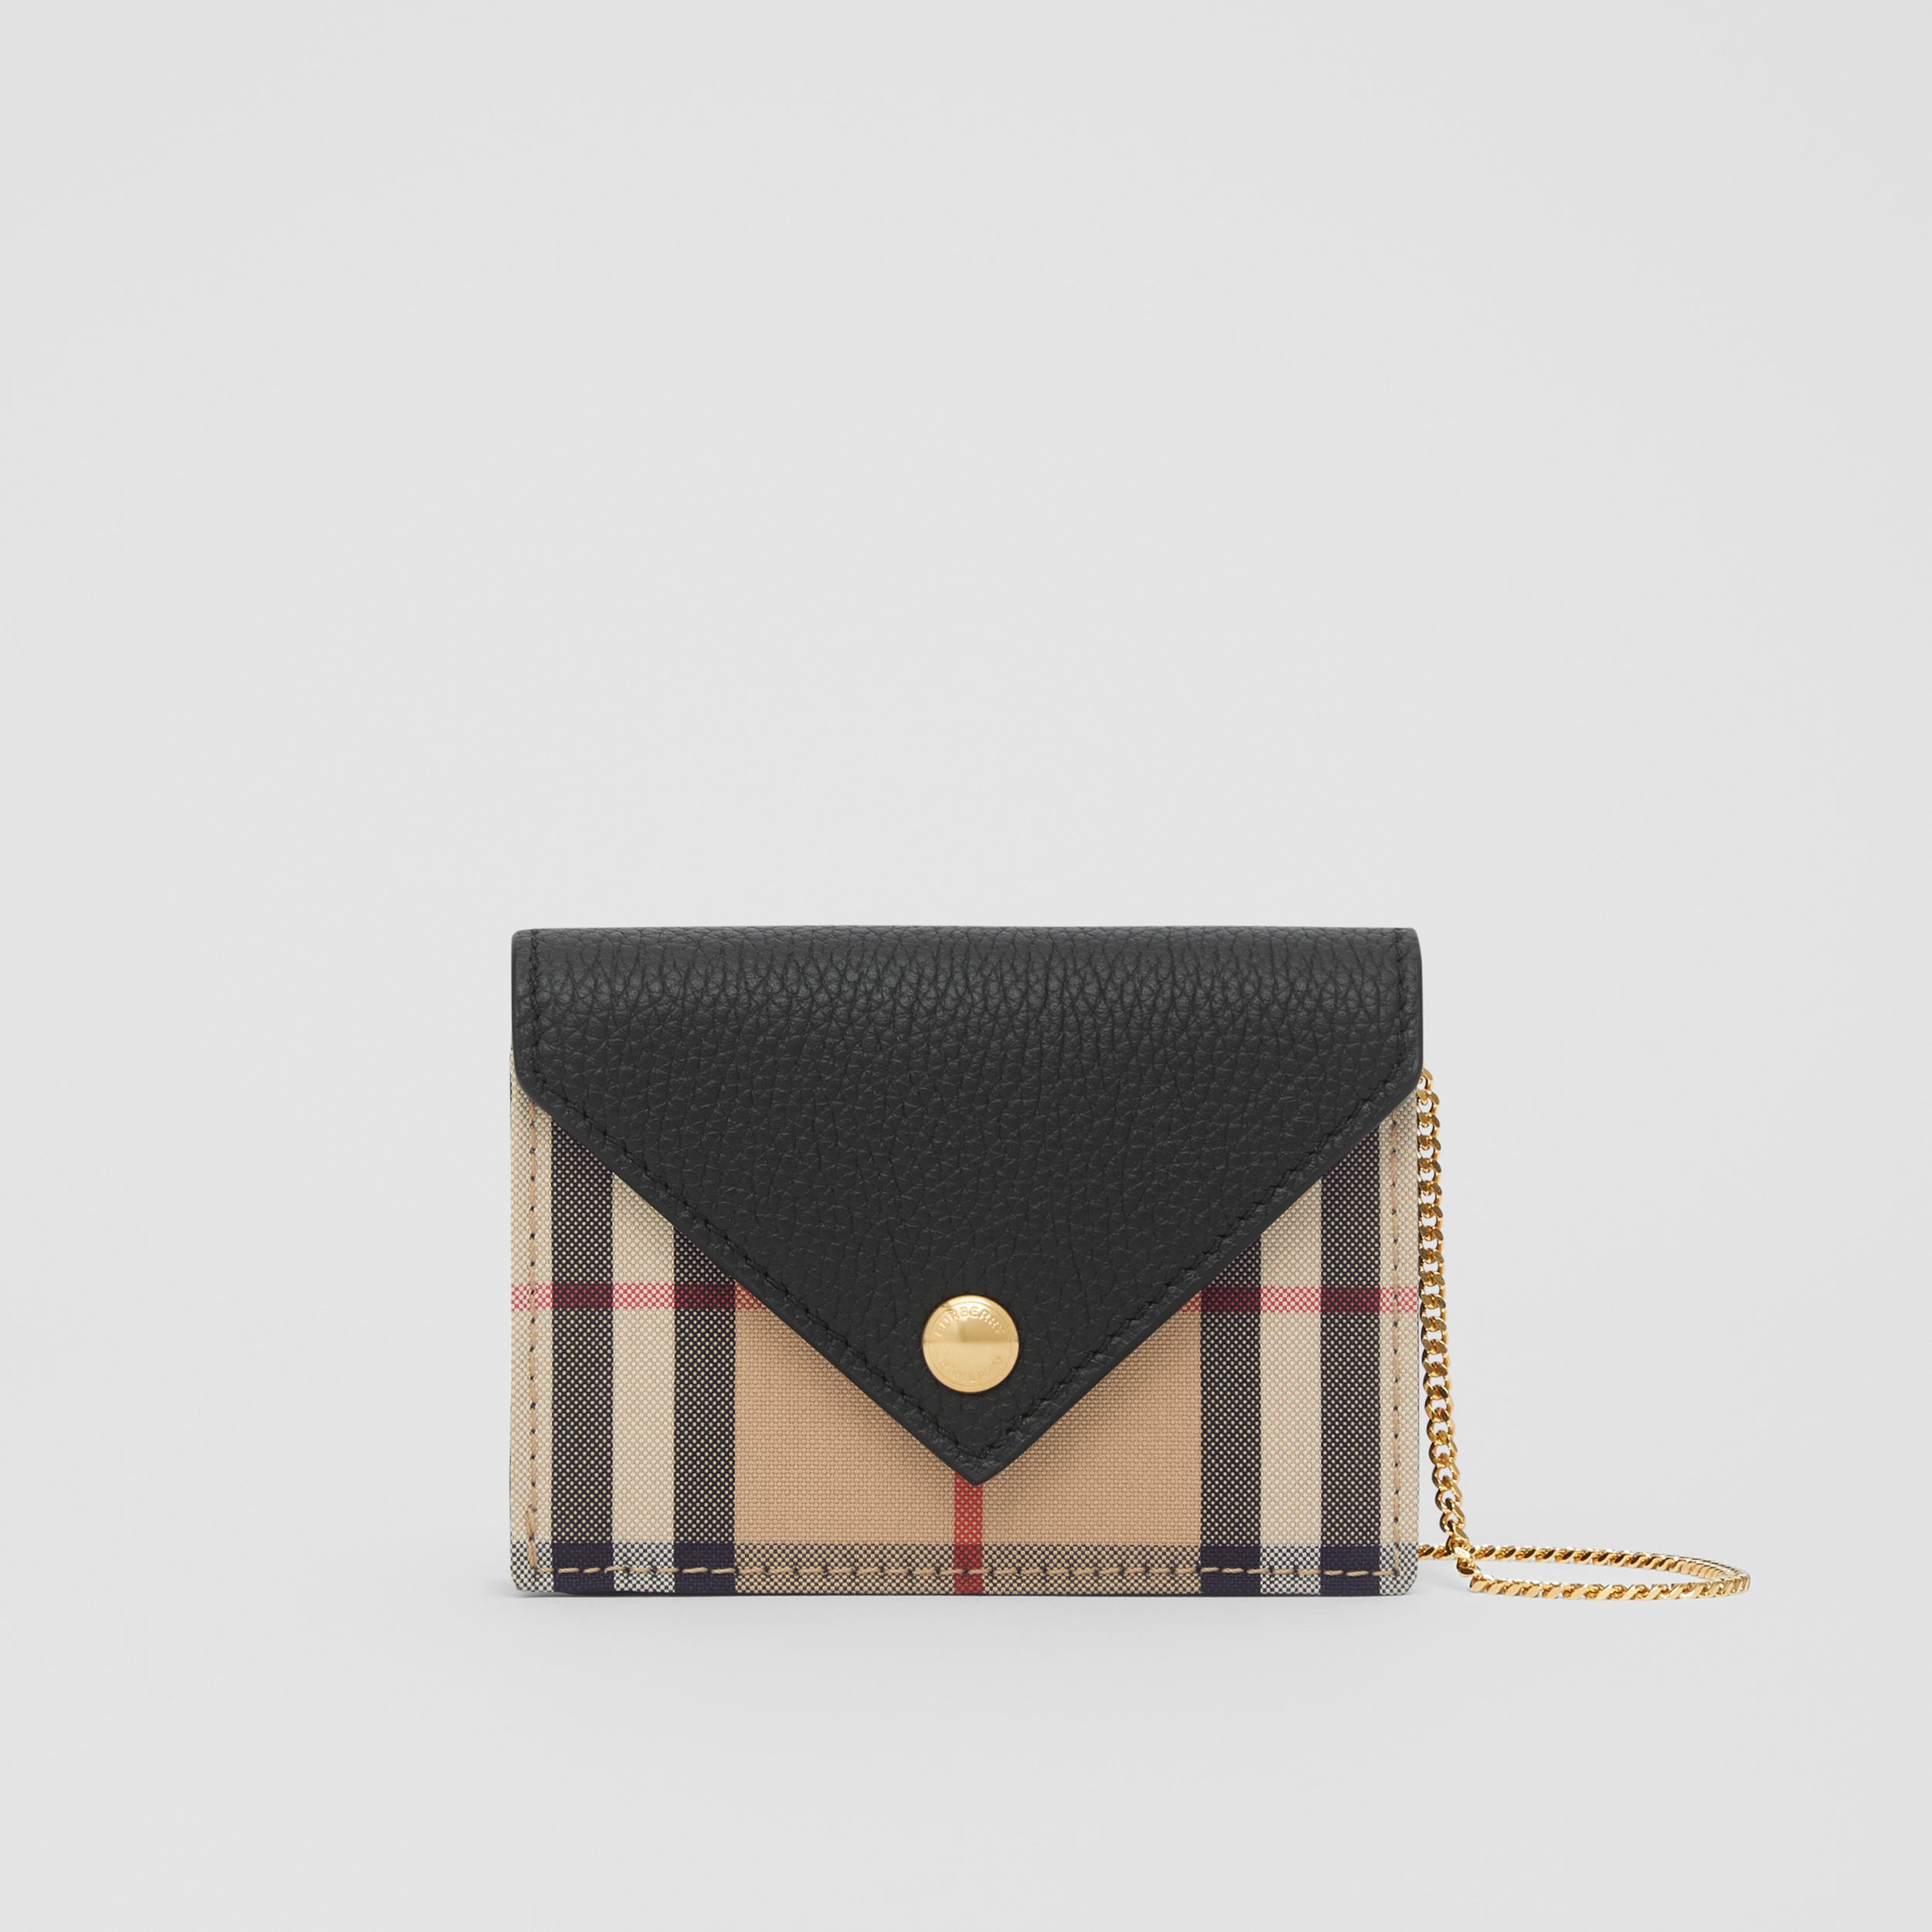 Vintage Check and Leather Card Case with Strap in Black - Women | Burberry Hong Kong S.A.R. - 1